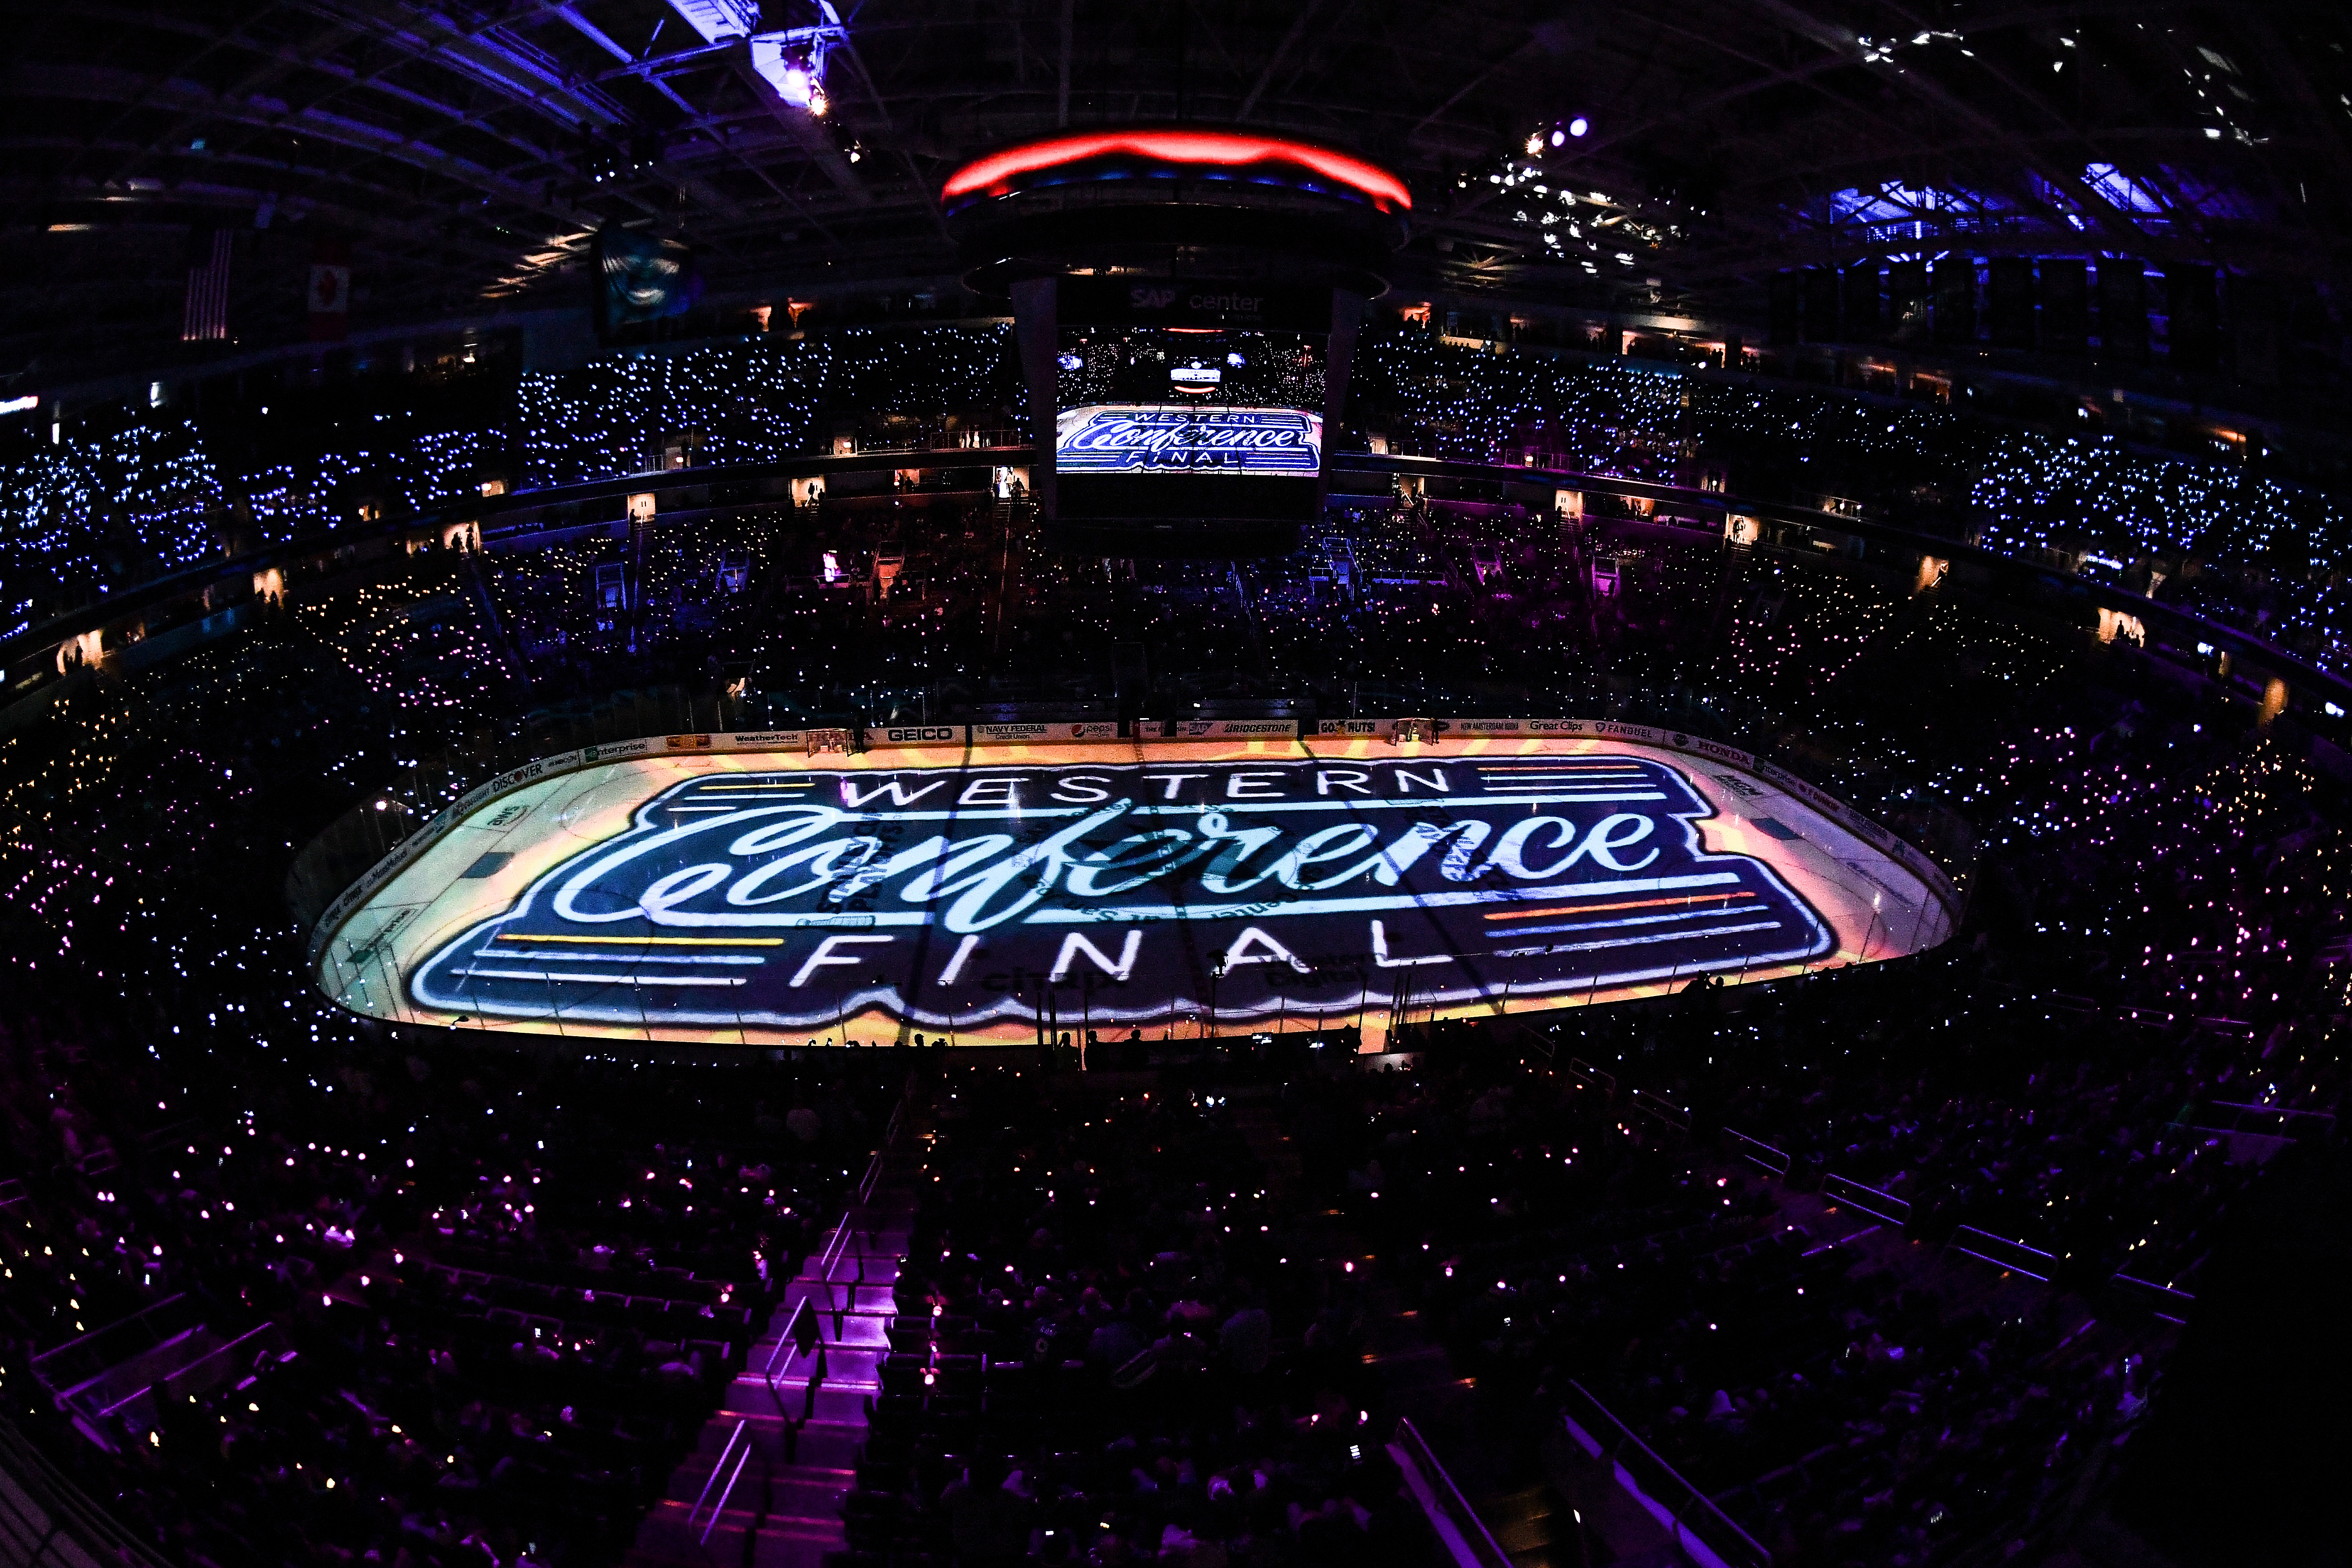 SAN JOSE, CA - MAY 13: The San Jose Sharks pregame lights show against the St. Louis Blues in Game Two of the Western Conference Final during the 2019 NHL Stanley Cup Playoffs at SAP Center on May 13, 2019 in San Jose, California